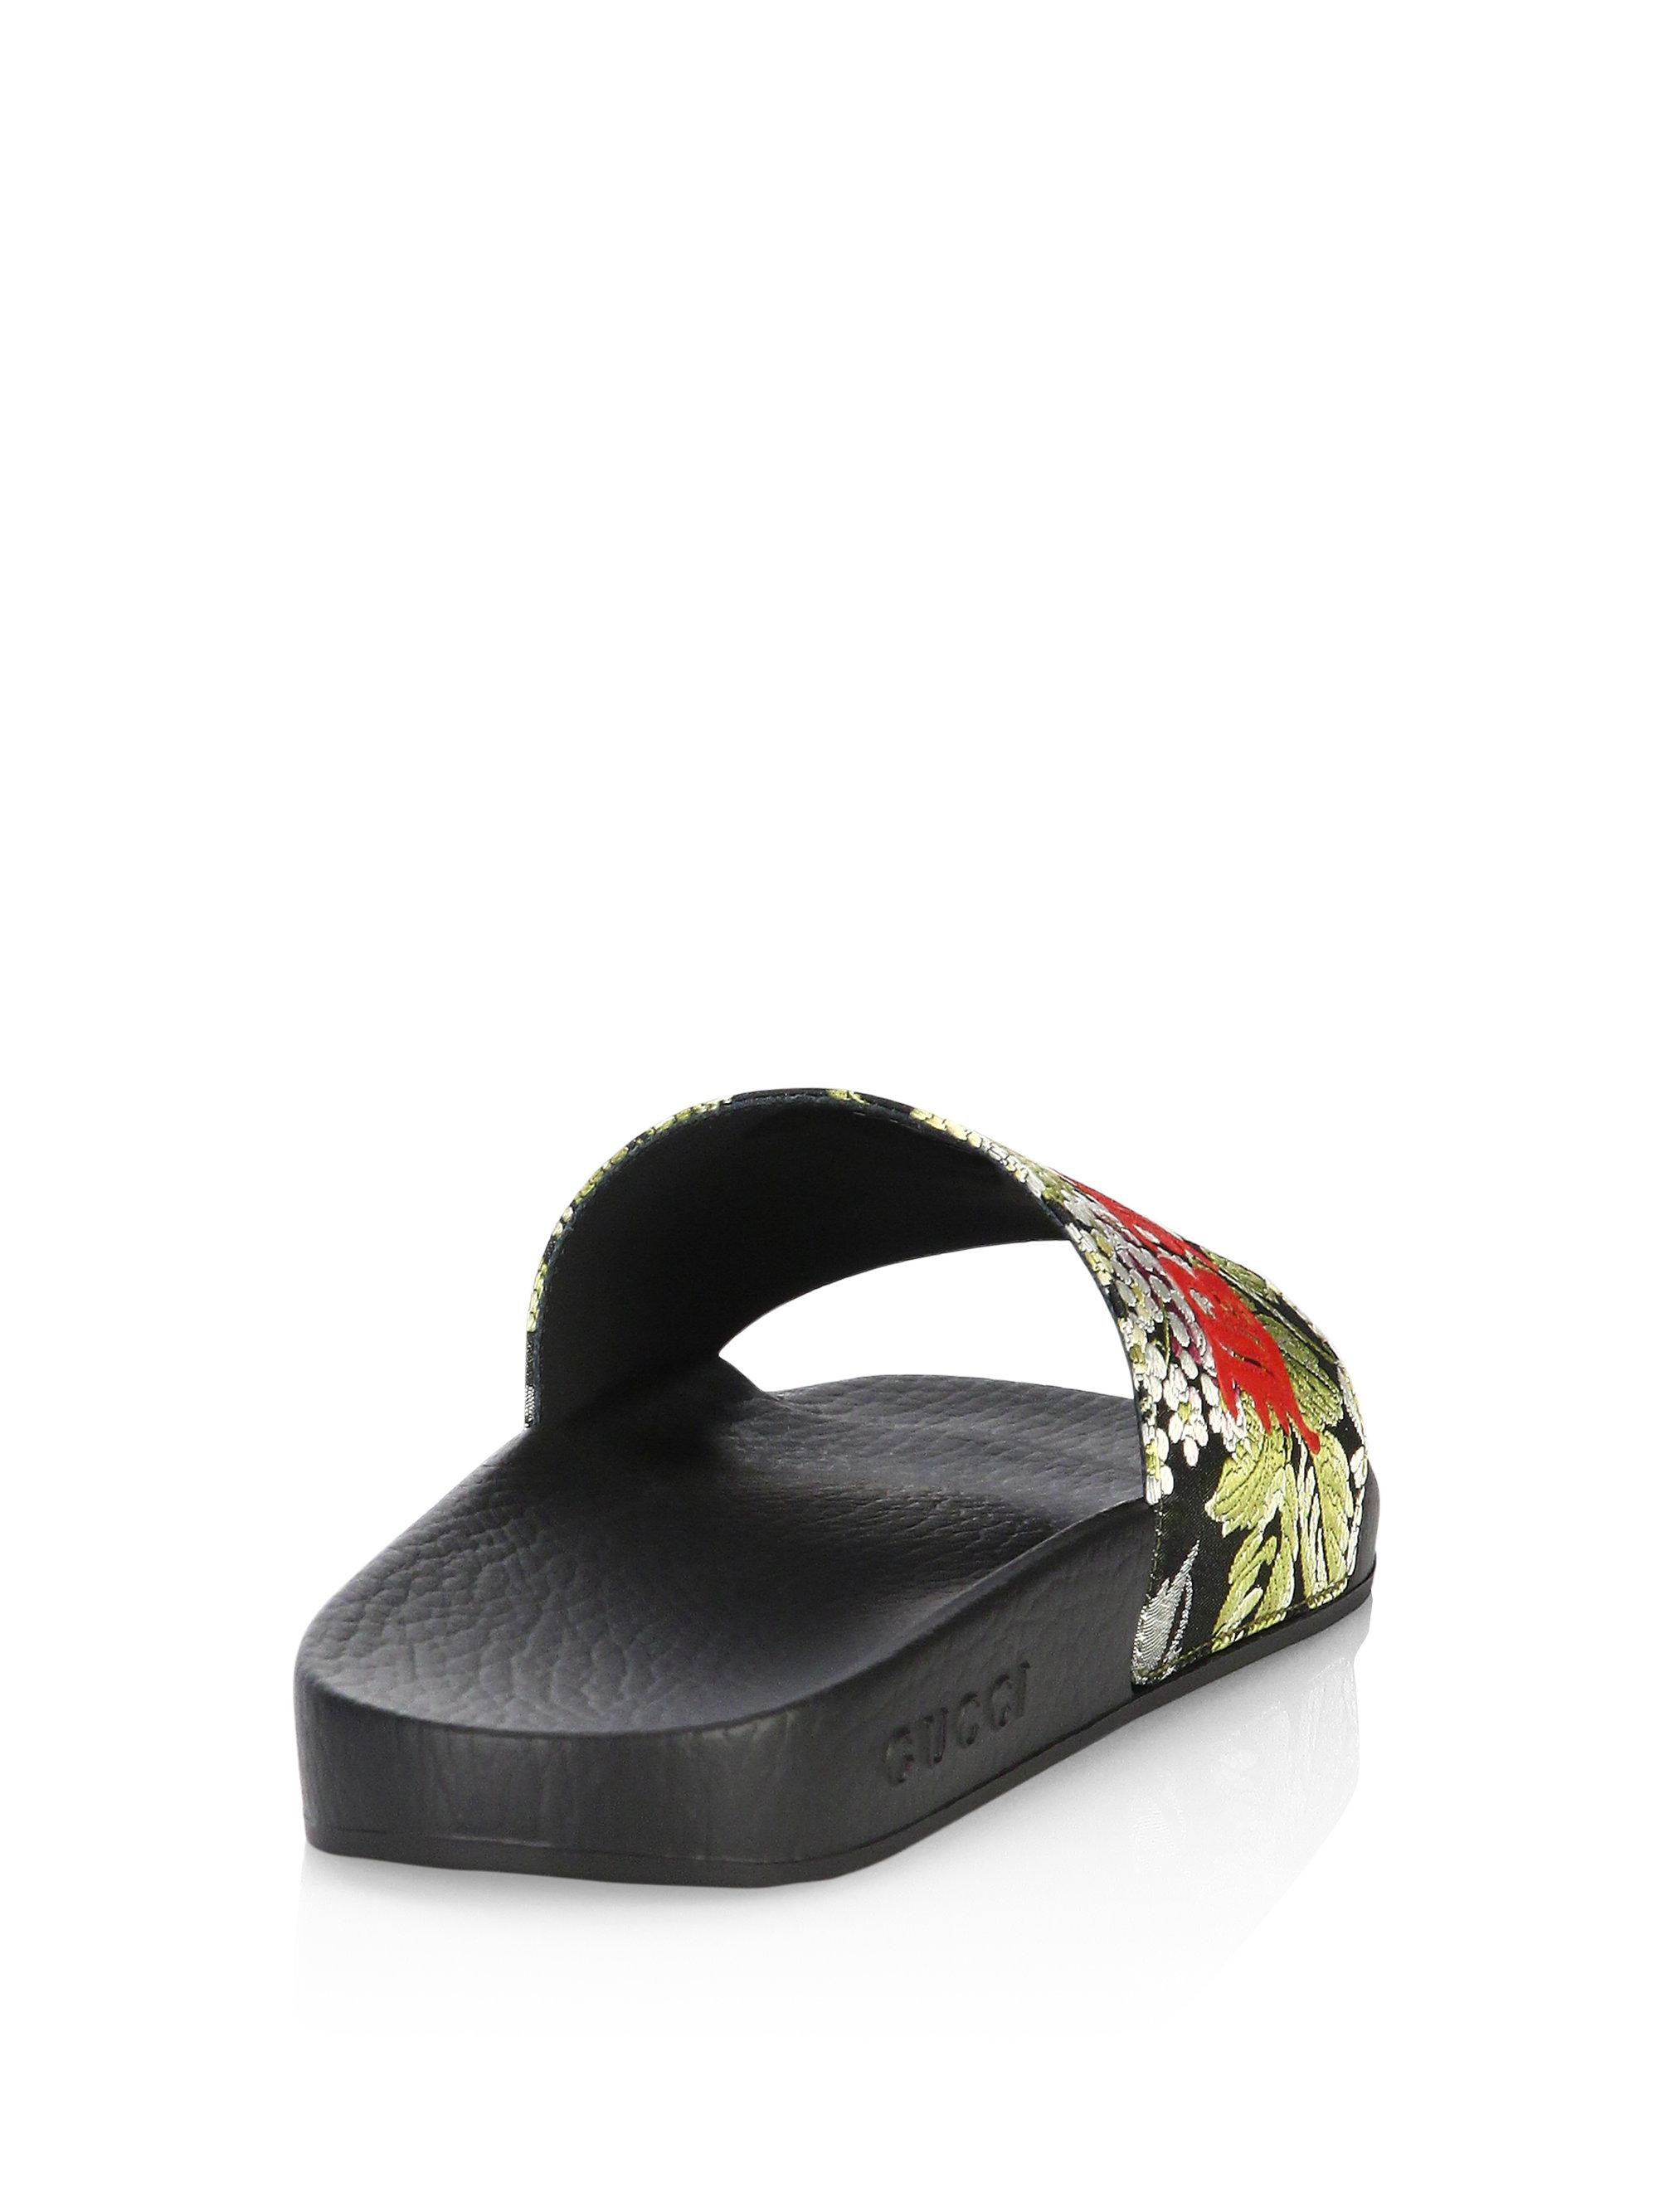 e2707028d Lyst - Gucci Pursuit Romantic Floral Jacquard Slides in Black